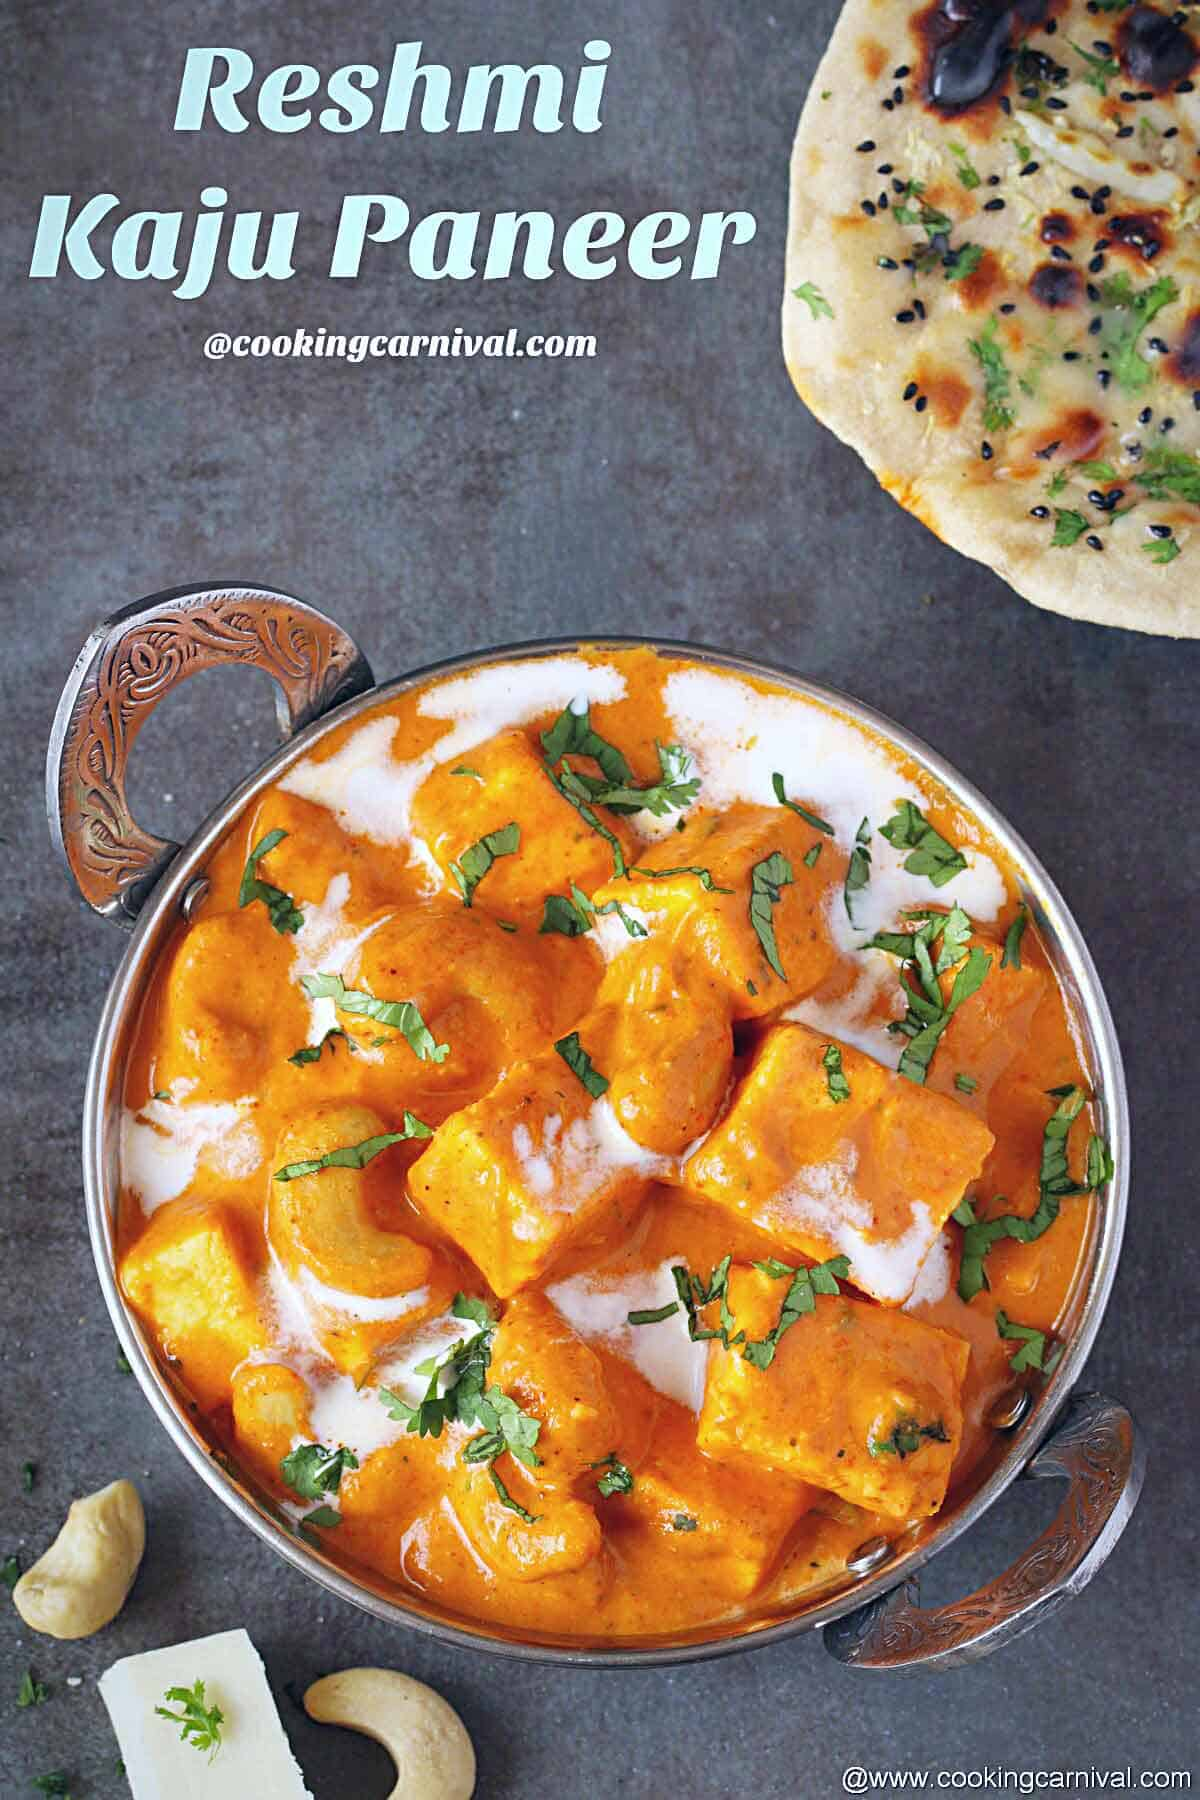 Punjabi paneer curry in a steel bowl, placed on a black tile